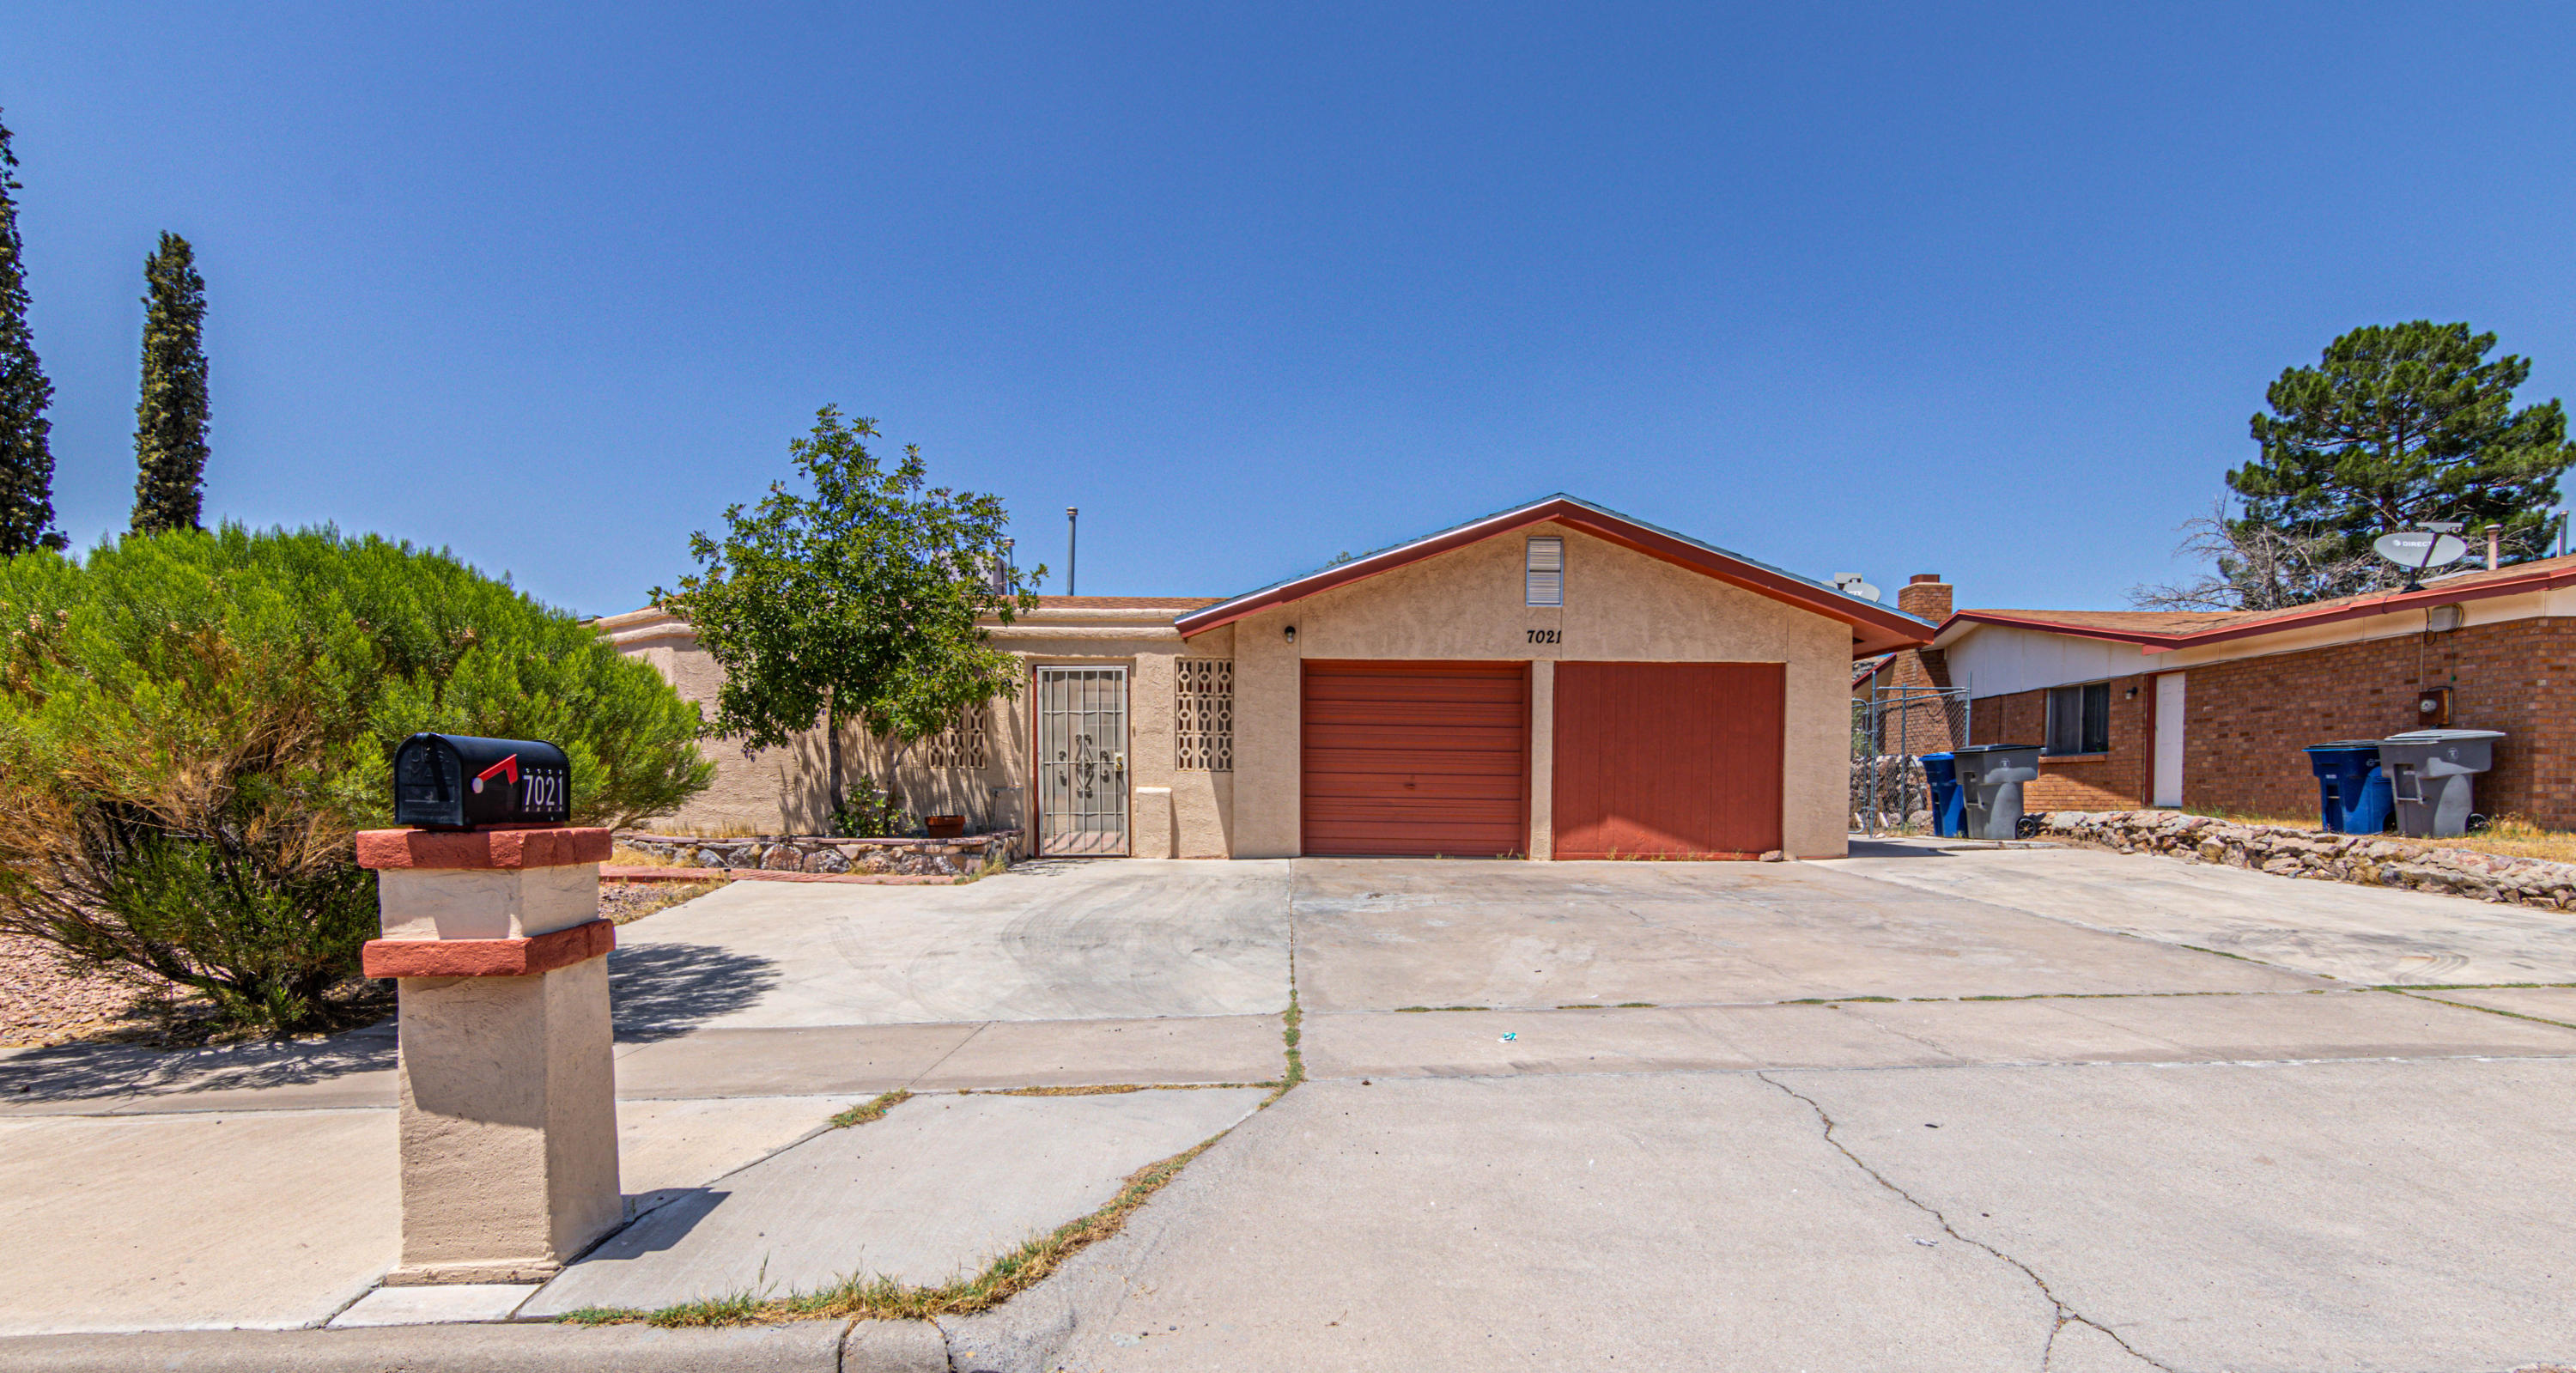 7021 CERRO NEGRO, El Paso, Texas 79912, 3 Bedrooms Bedrooms, ,2 BathroomsBathrooms,Residential,For sale,CERRO NEGRO,837929